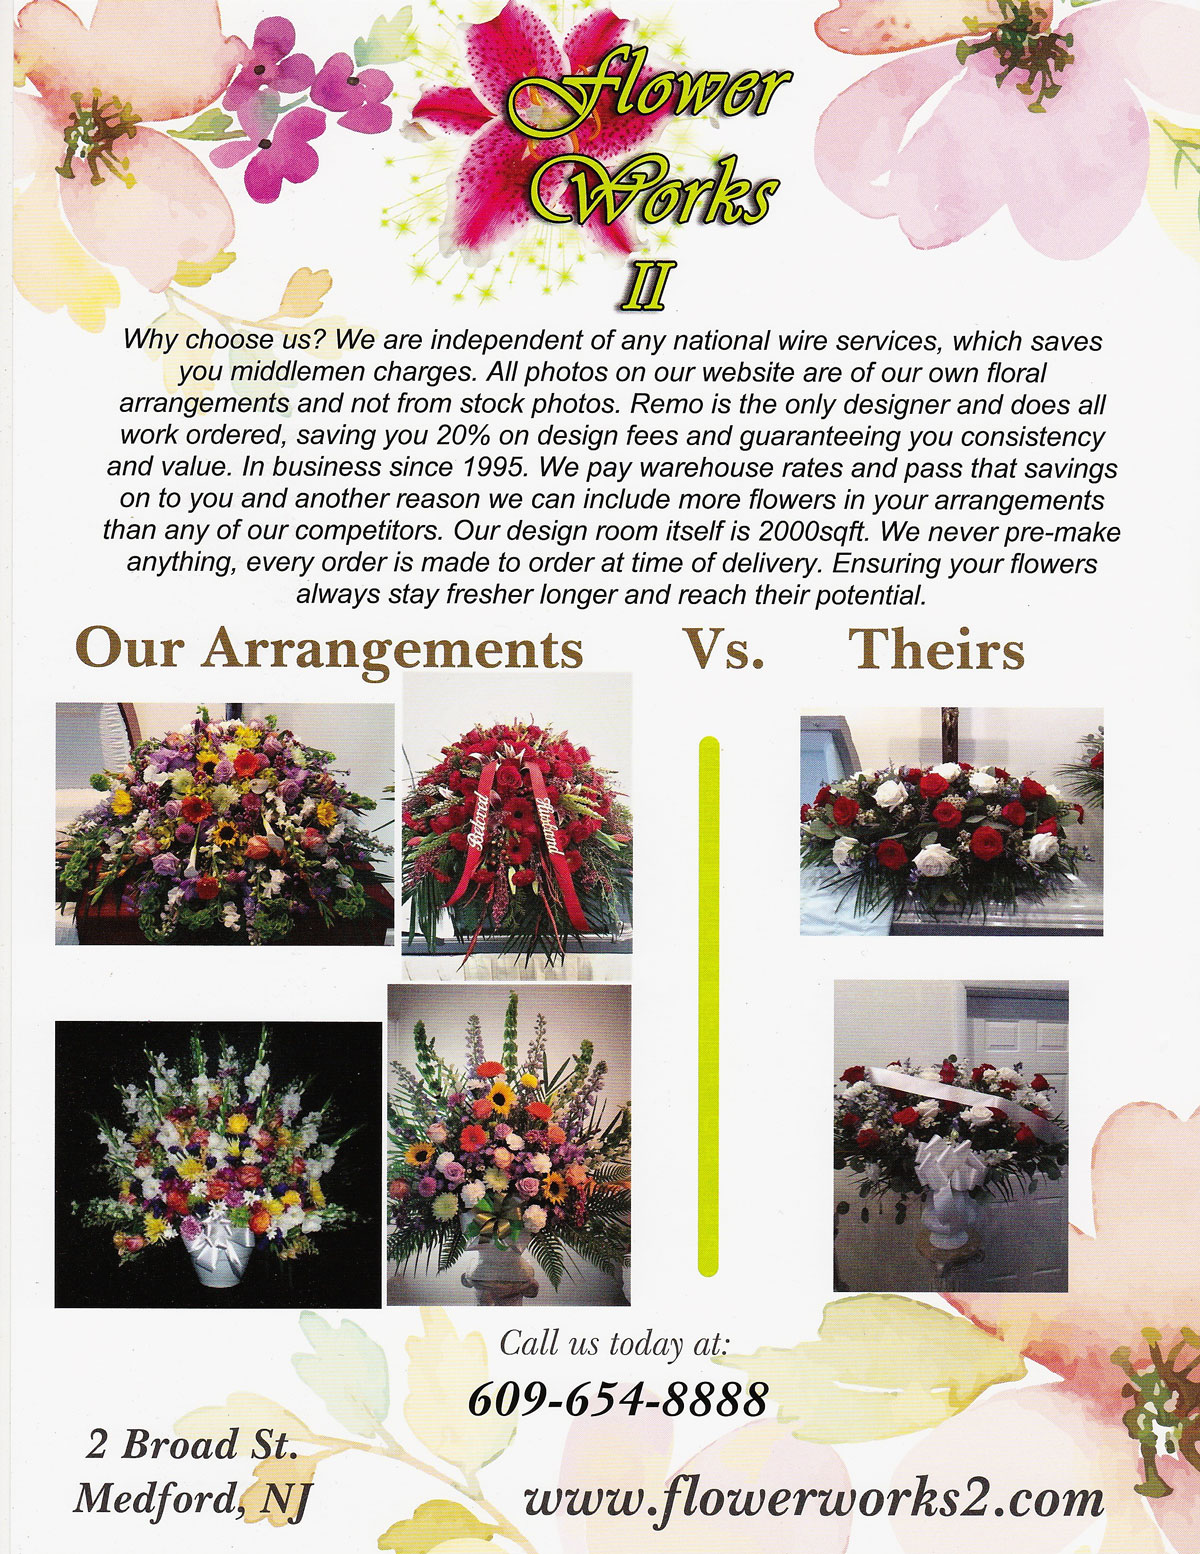 Flower Works II, your Medford, NJ Sympathy Florist